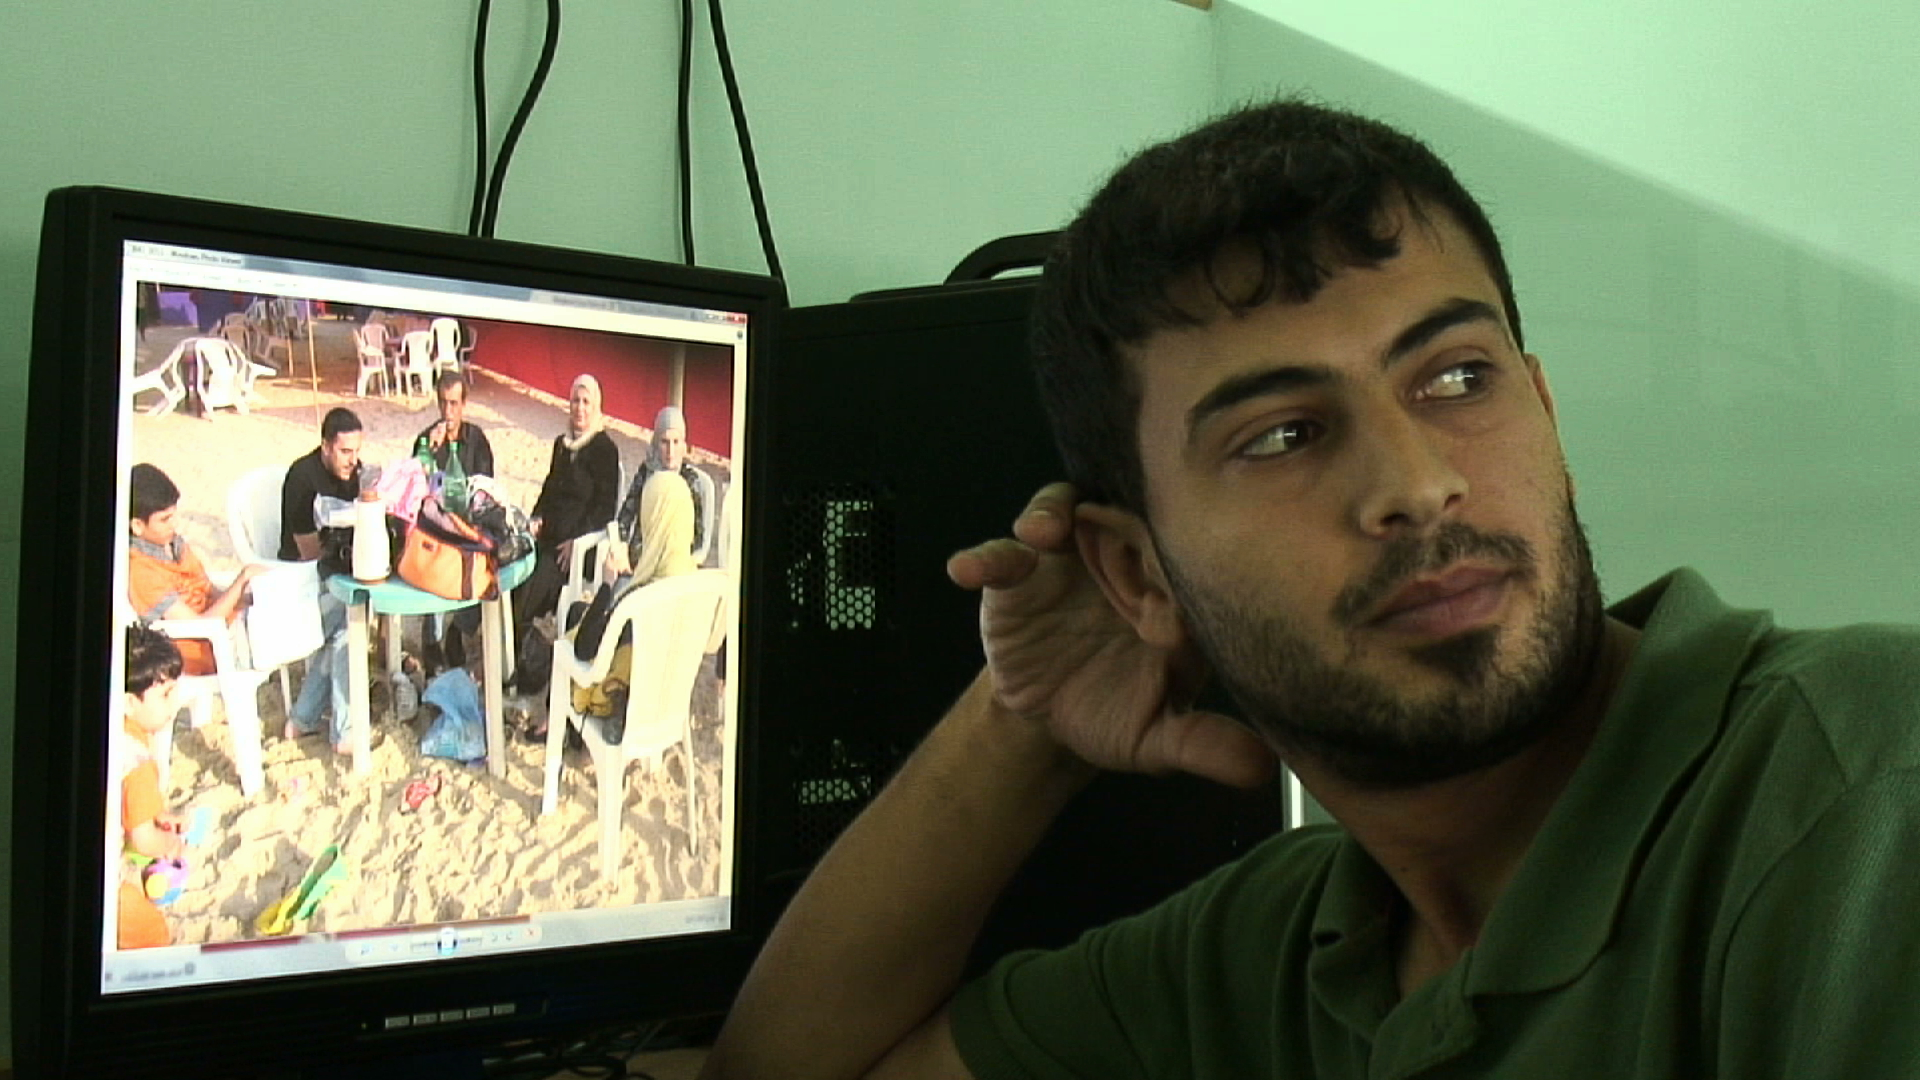 Gaza Calling + Land of the Brave + Gaza1920s + Skype Q&A